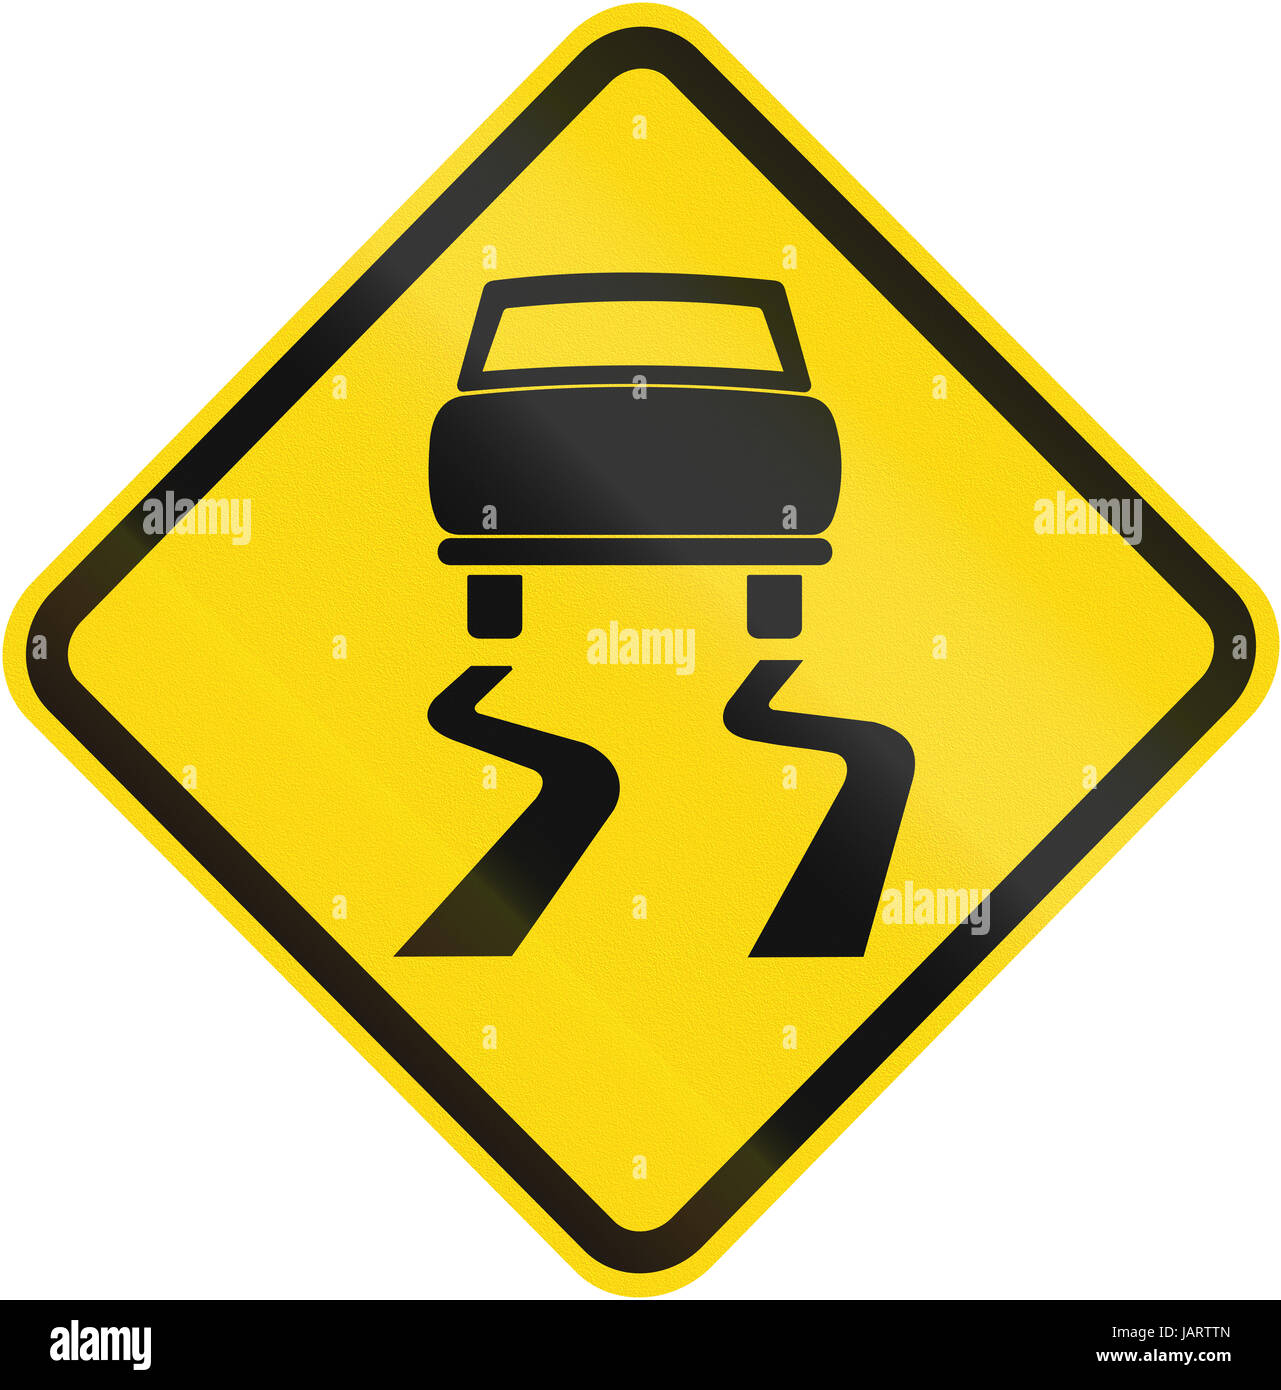 Road sign used in Brazil - Slippery road surface. - Stock Image